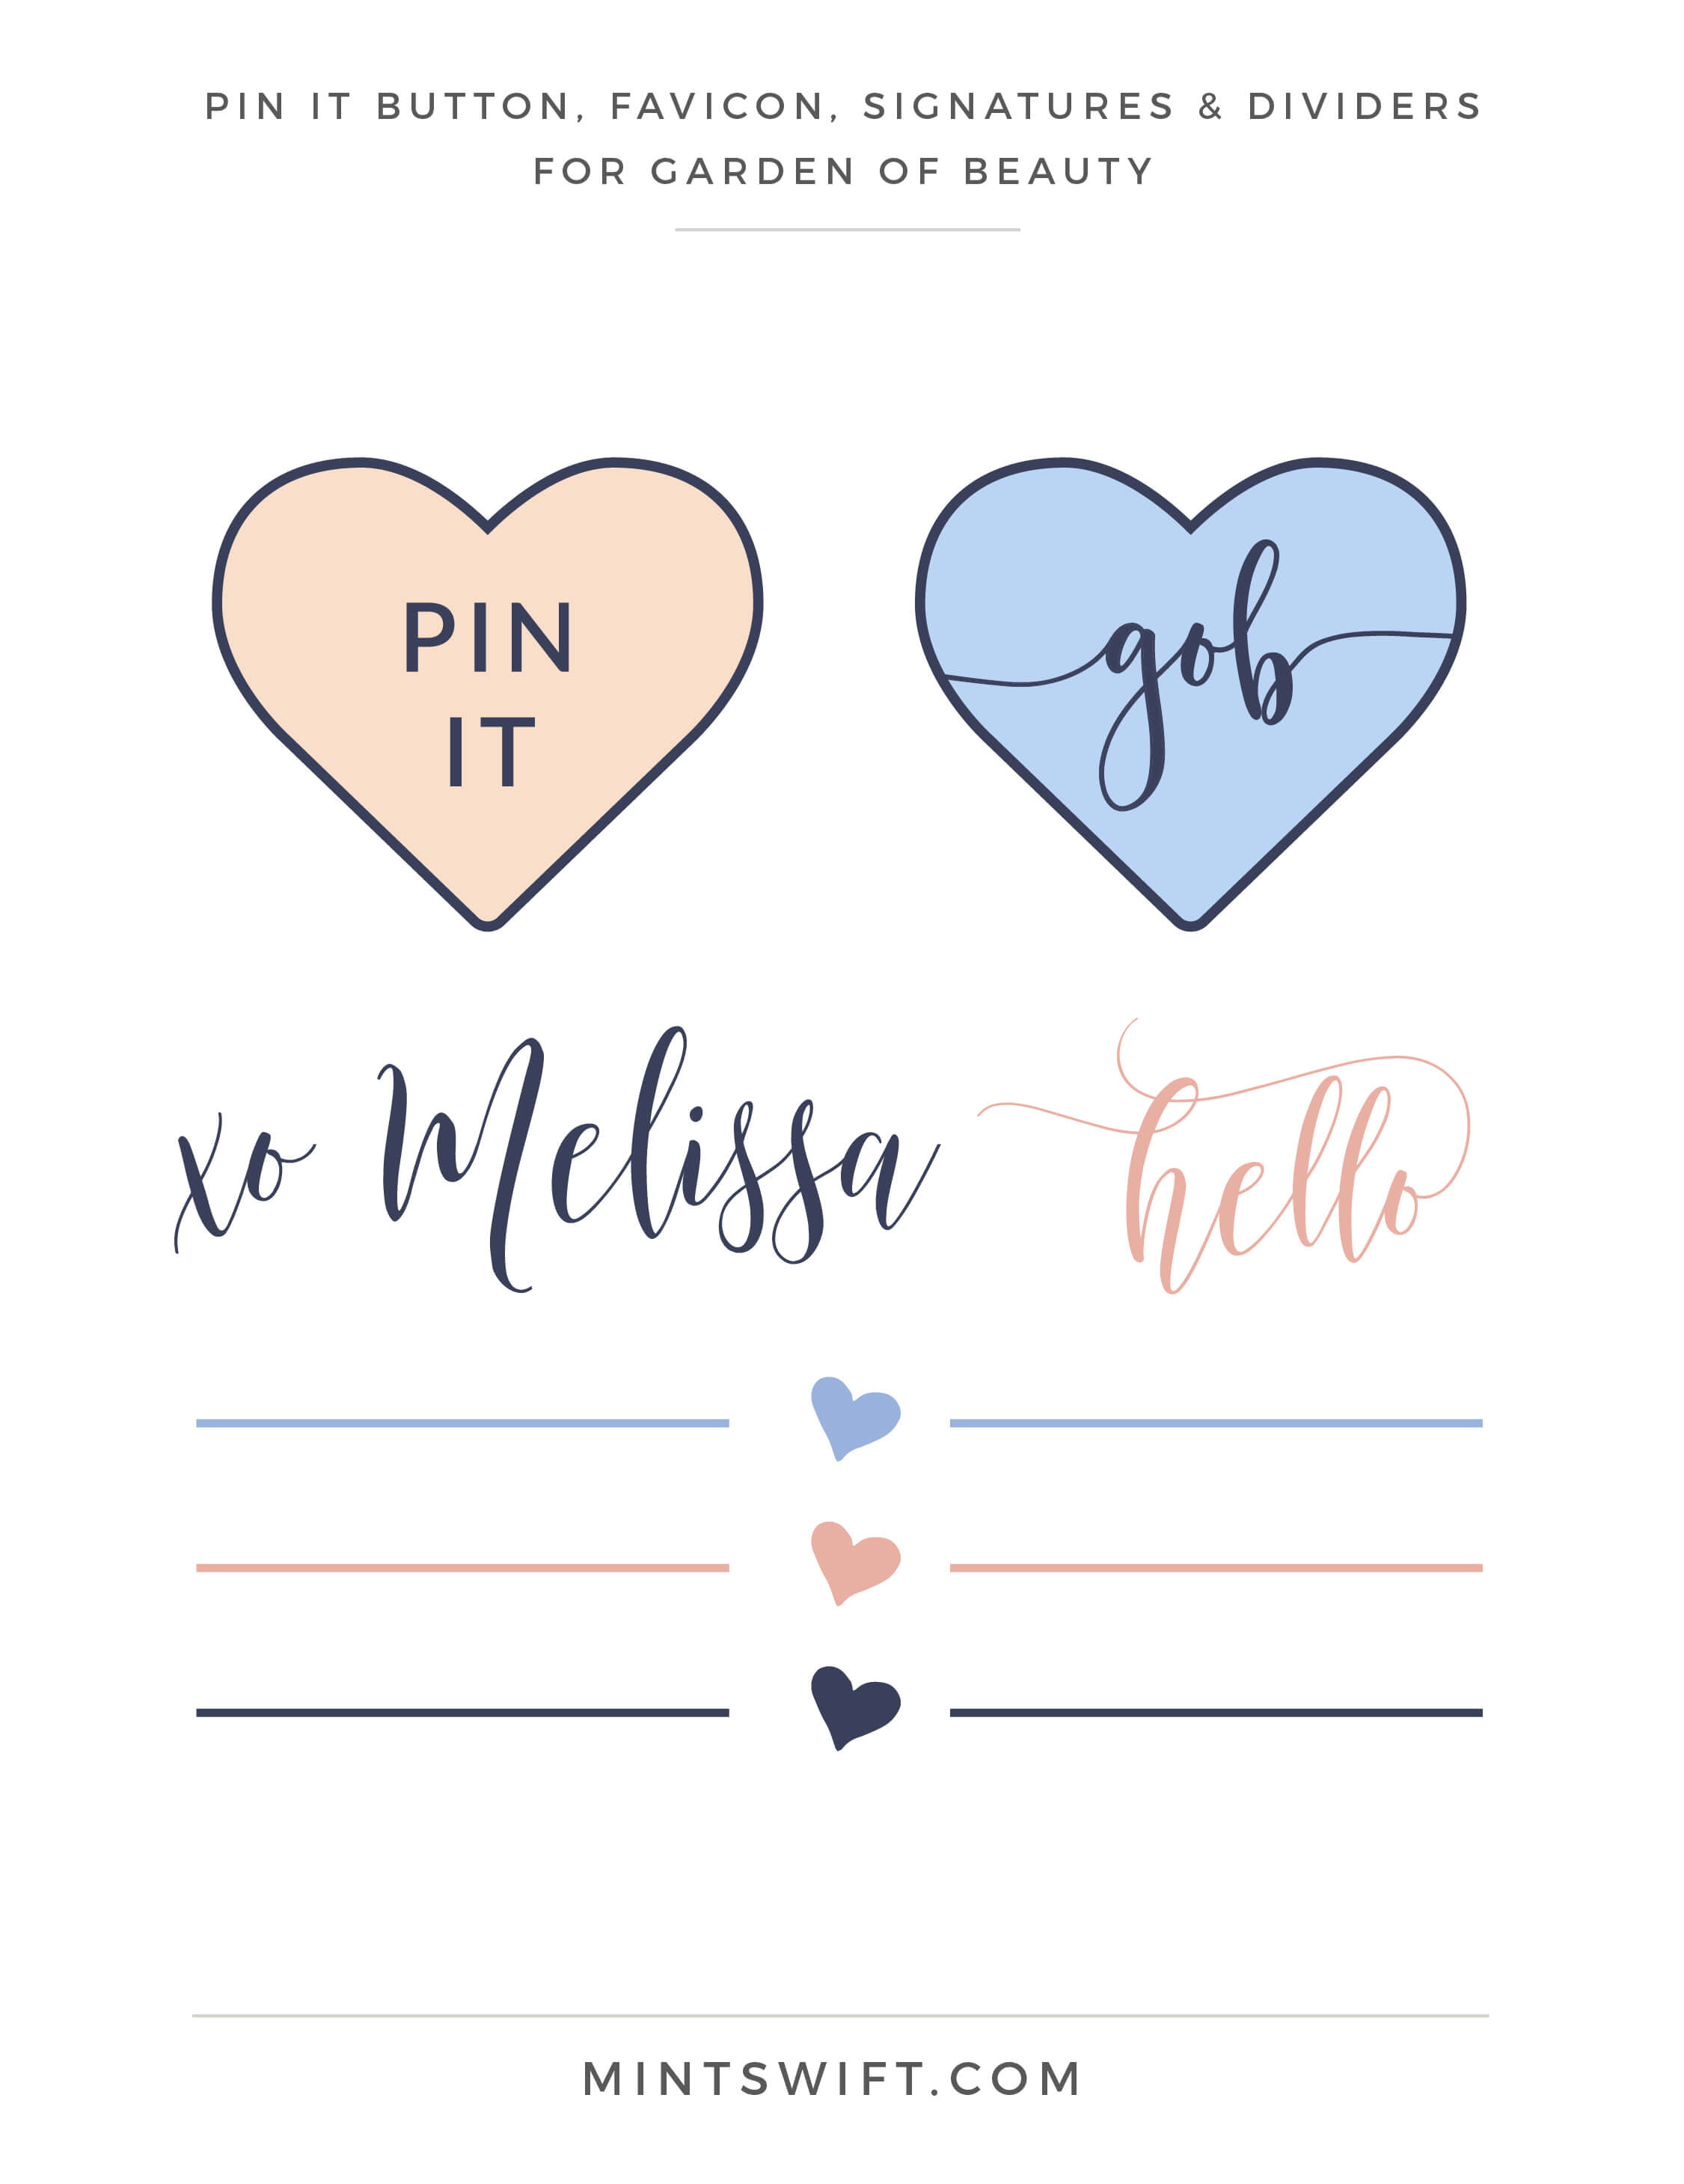 Garden of Beauty - Pin It Button, Favicon, Signatures & Dividers - Brand Design Package - MintSwift